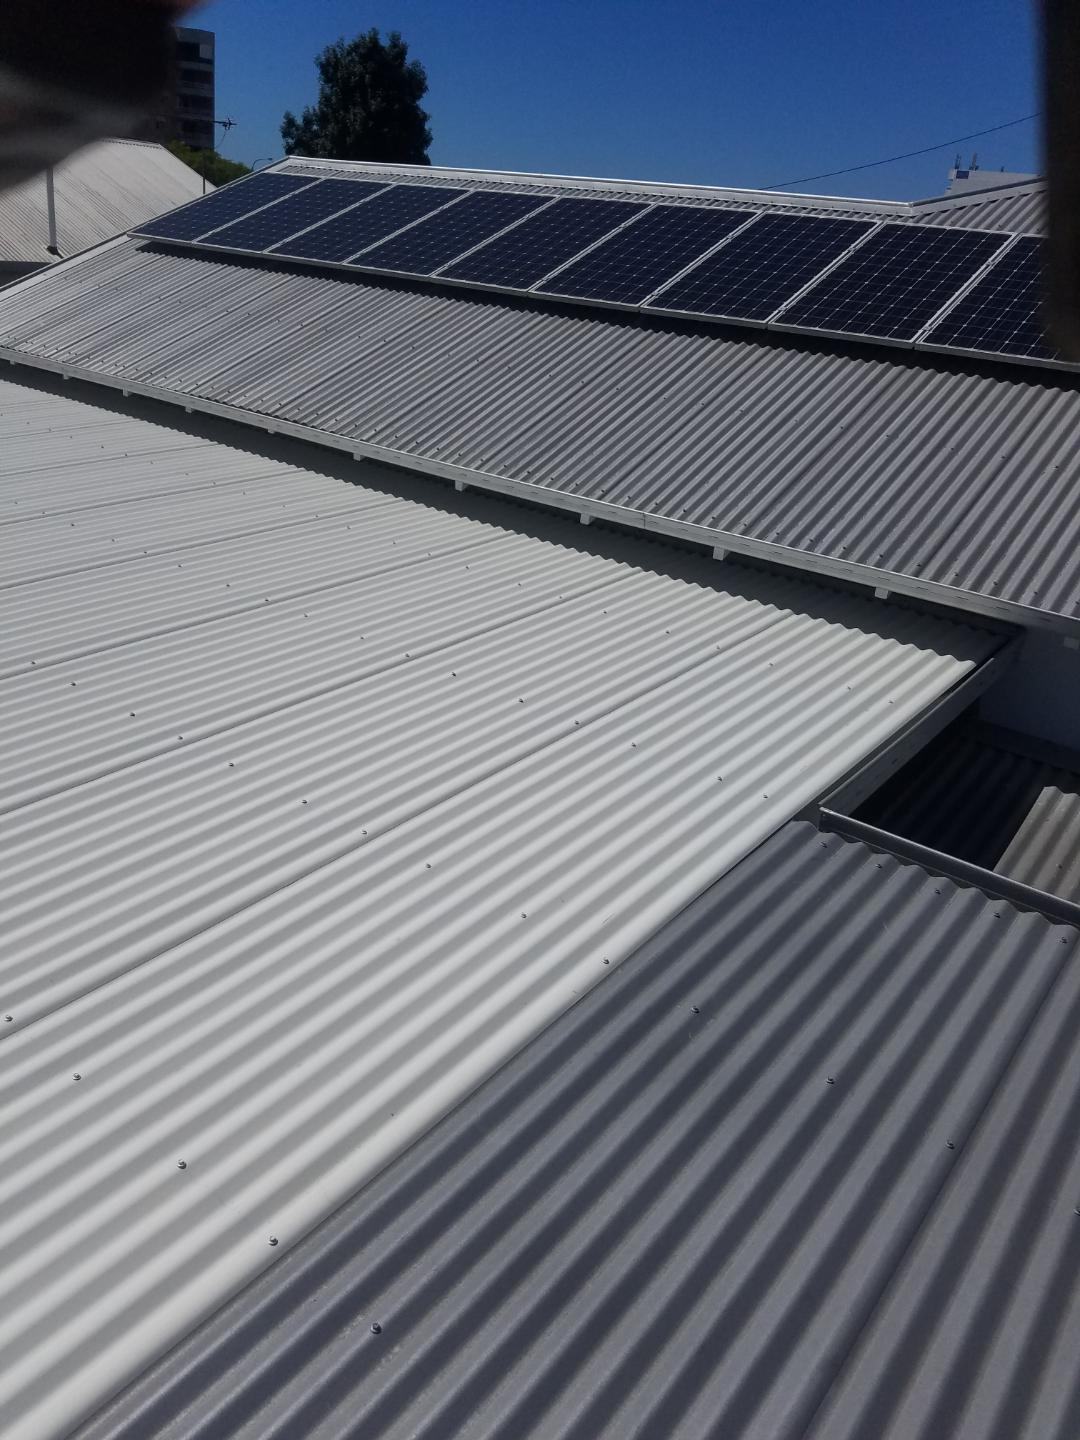 Specialists in installation, cleaning & repair of roof